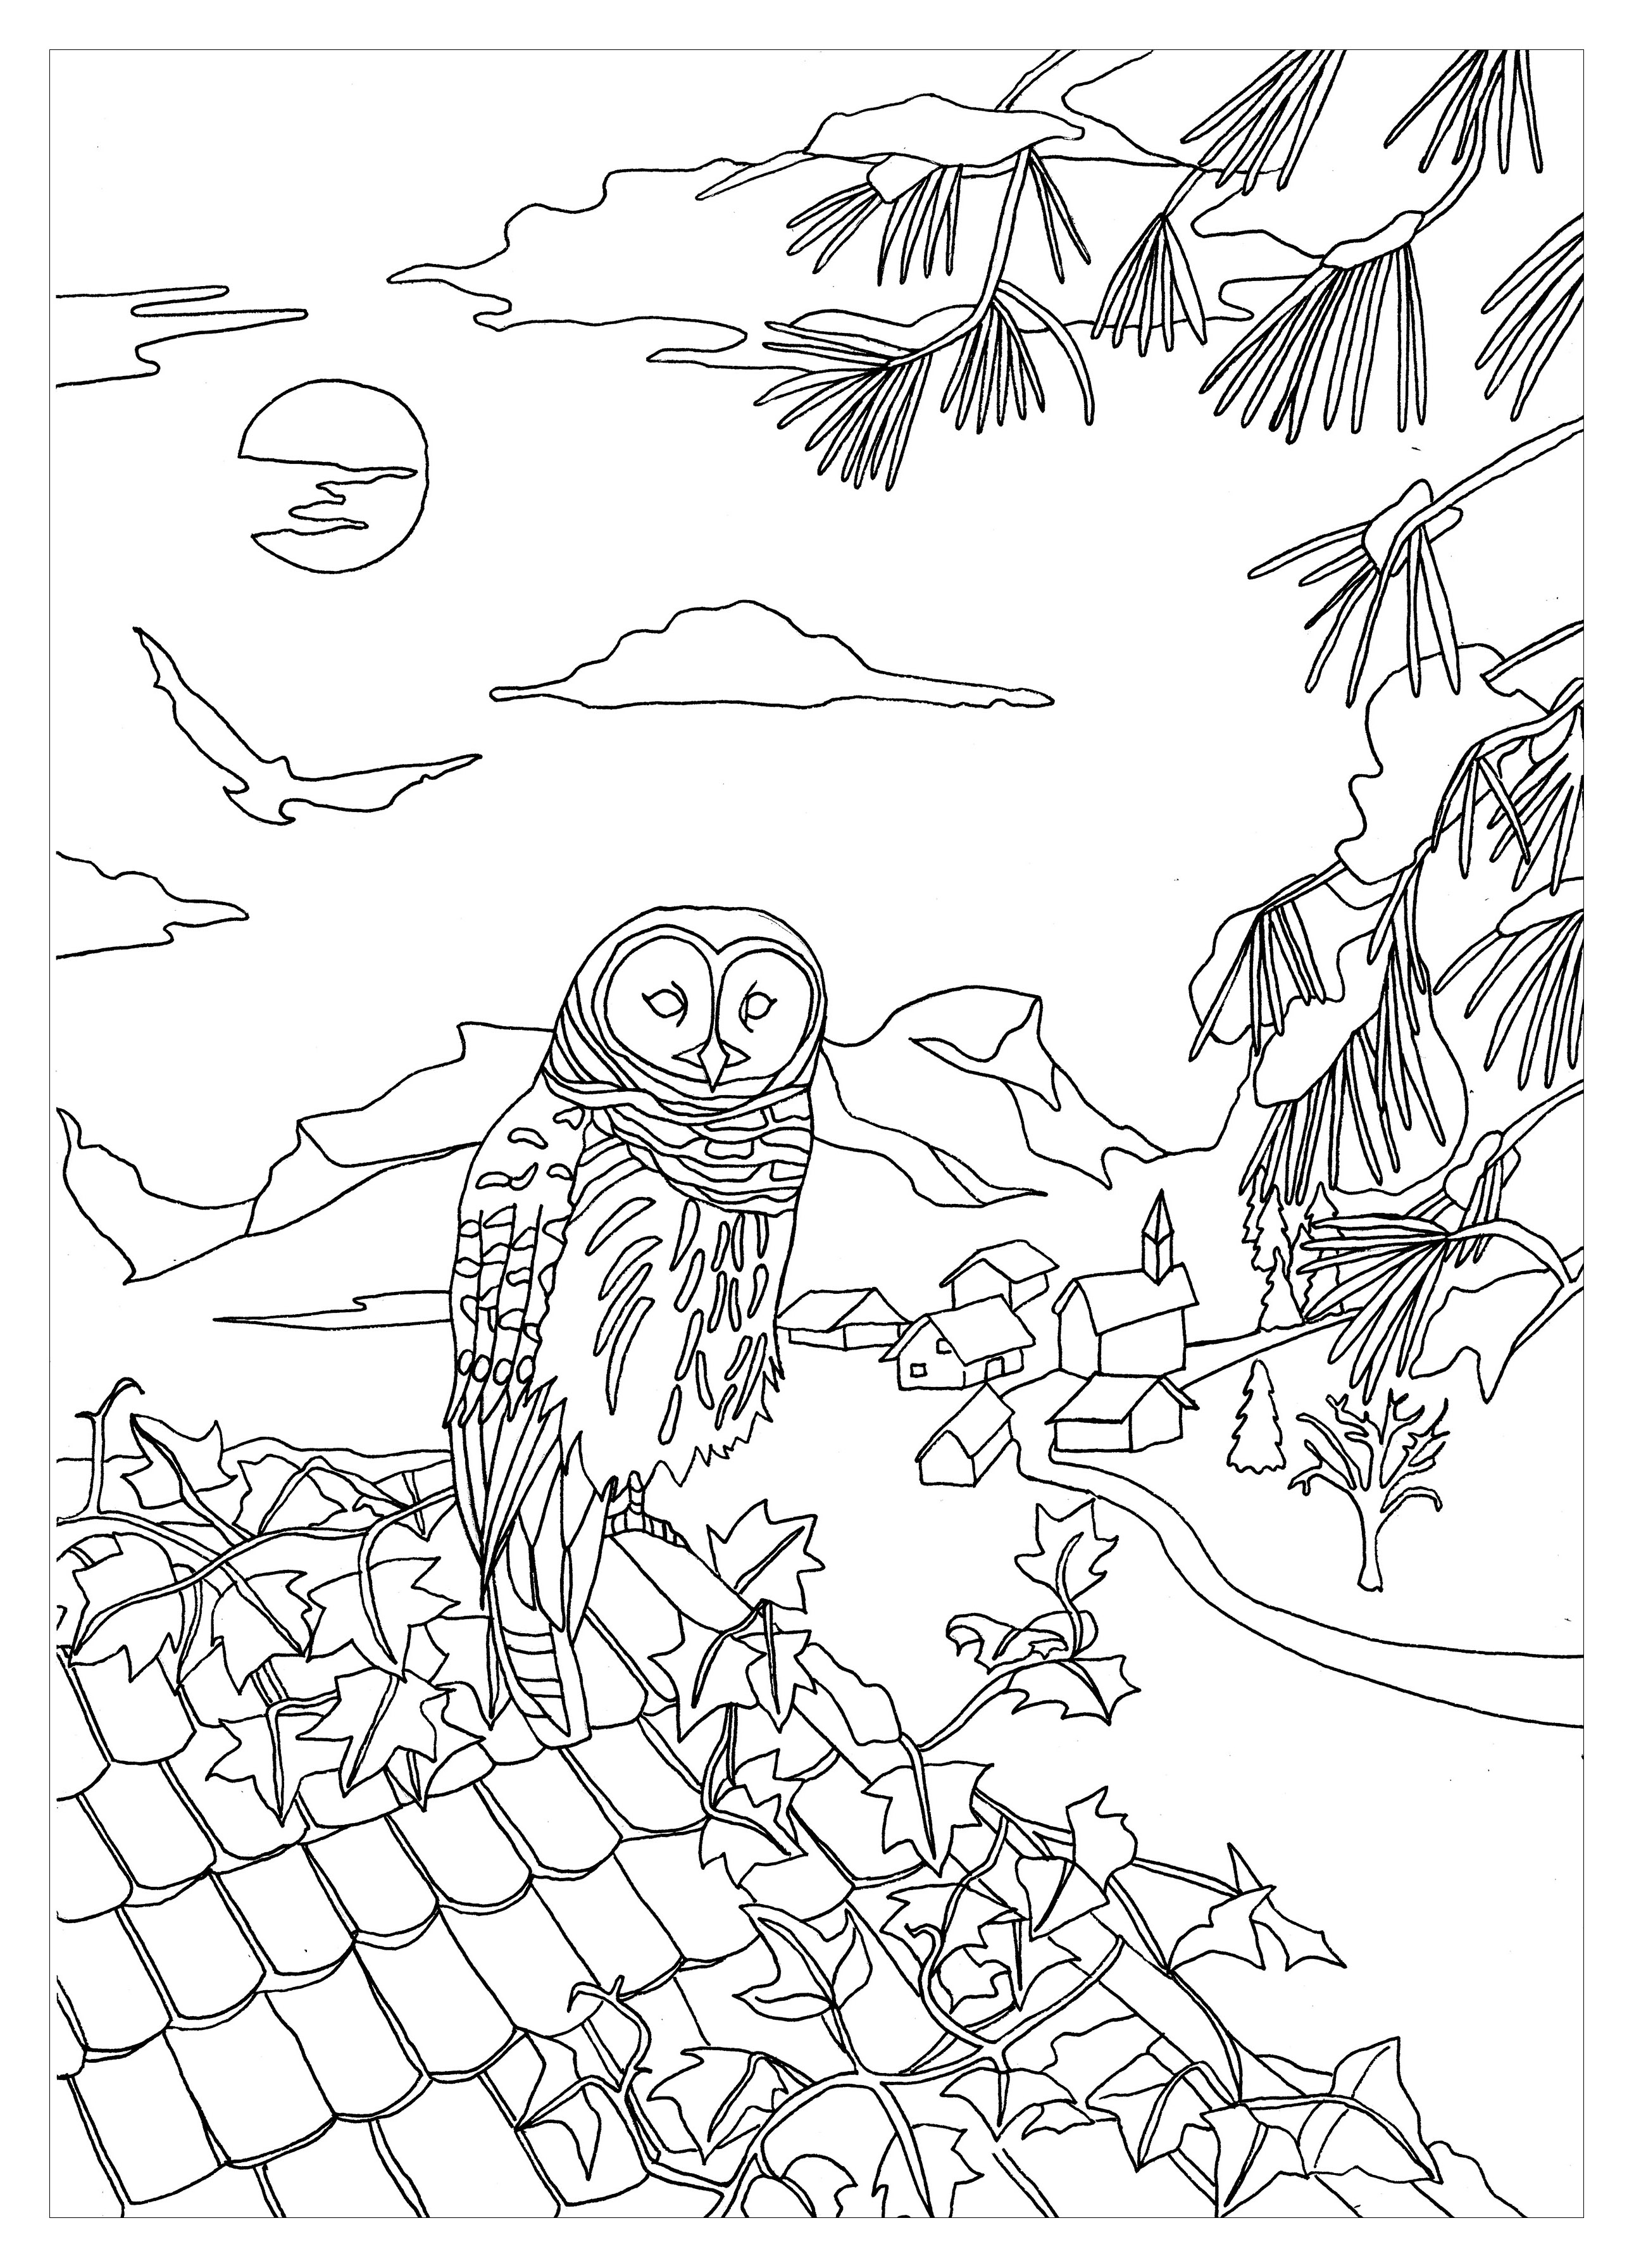 A beautiful Own on a roof, to print & color, an original coloring page .